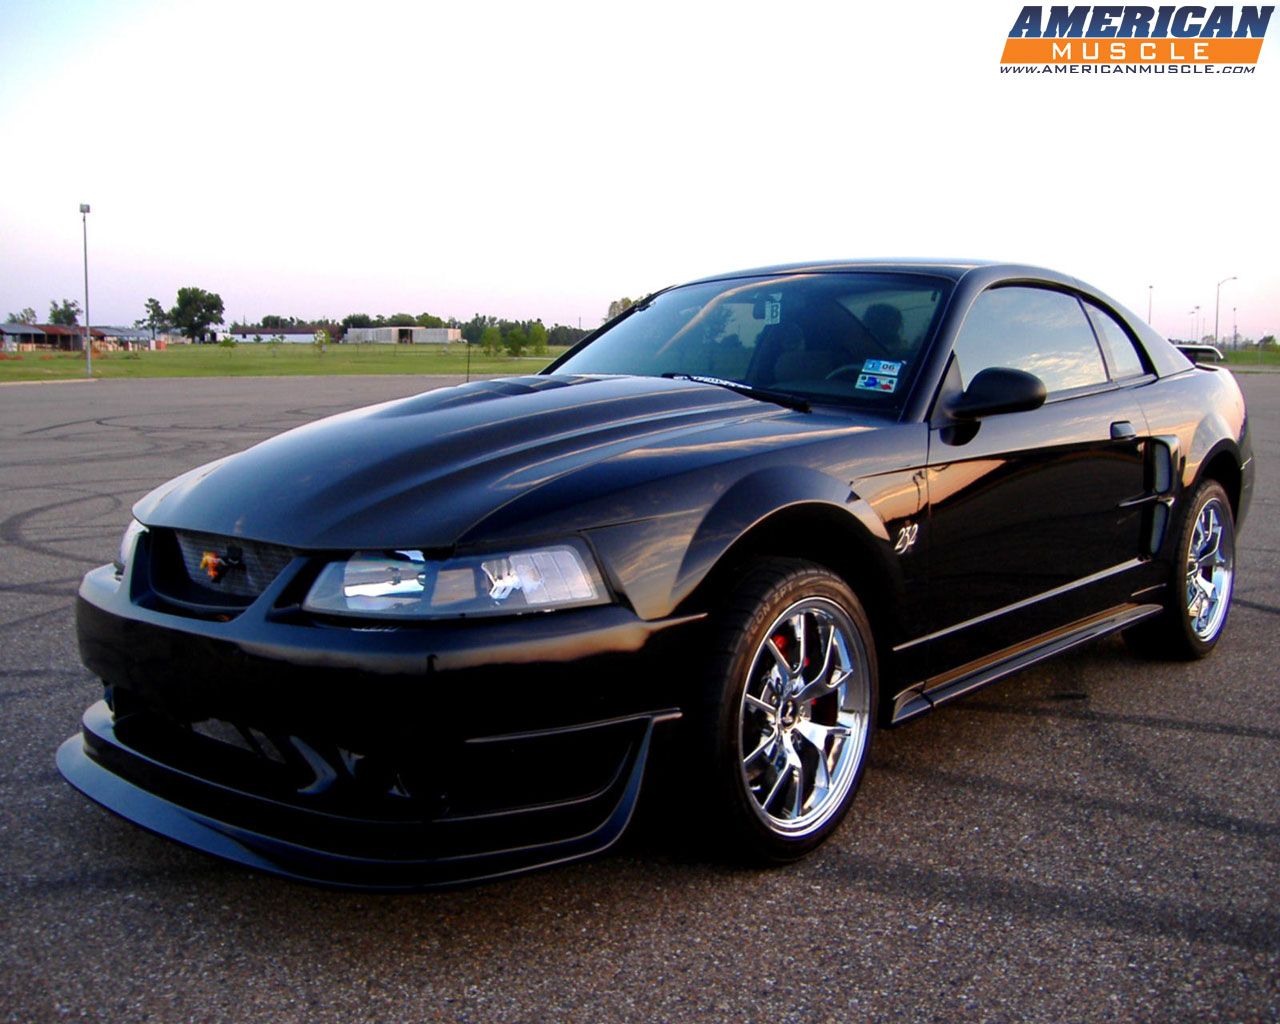 Ford Mustang Wallpapers Backgrounds 2000 Gt Fuel Filter 1280 X 1024